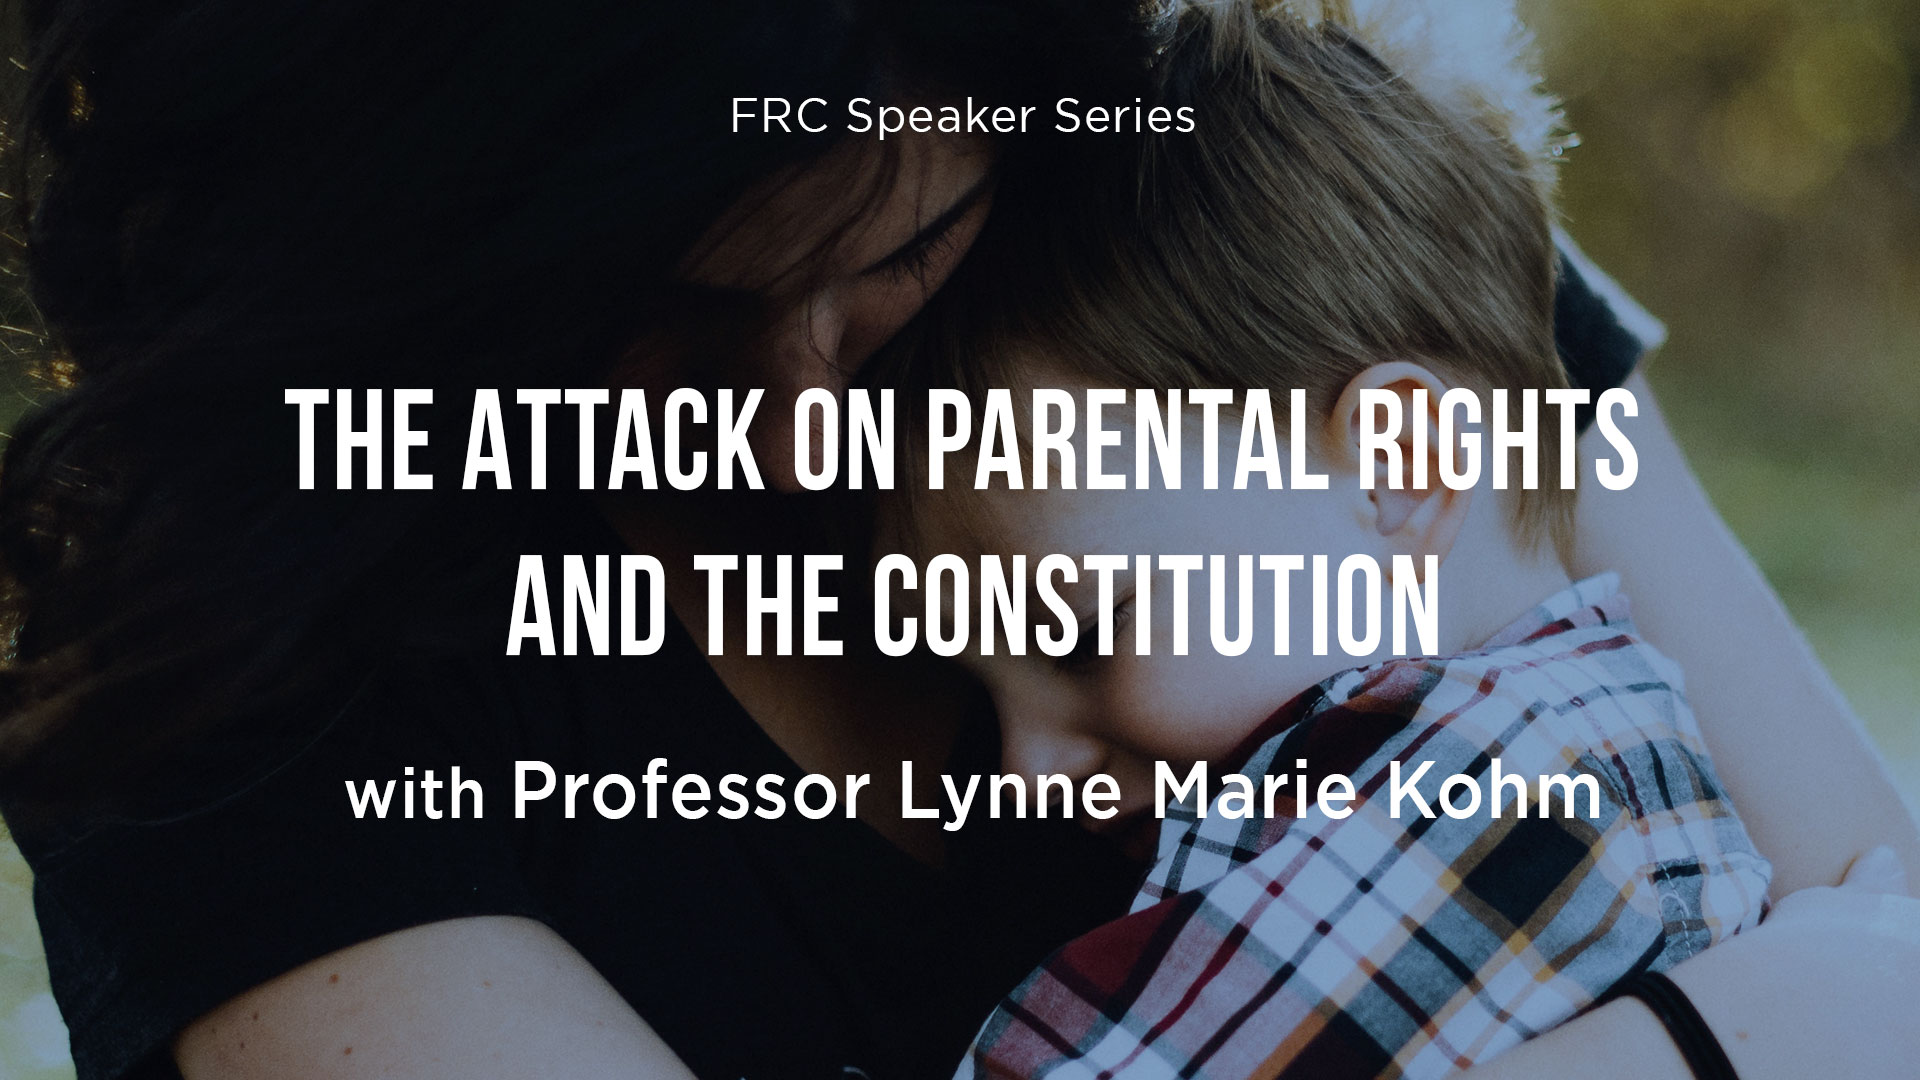 The Attack on Parental Rights and the Constitution